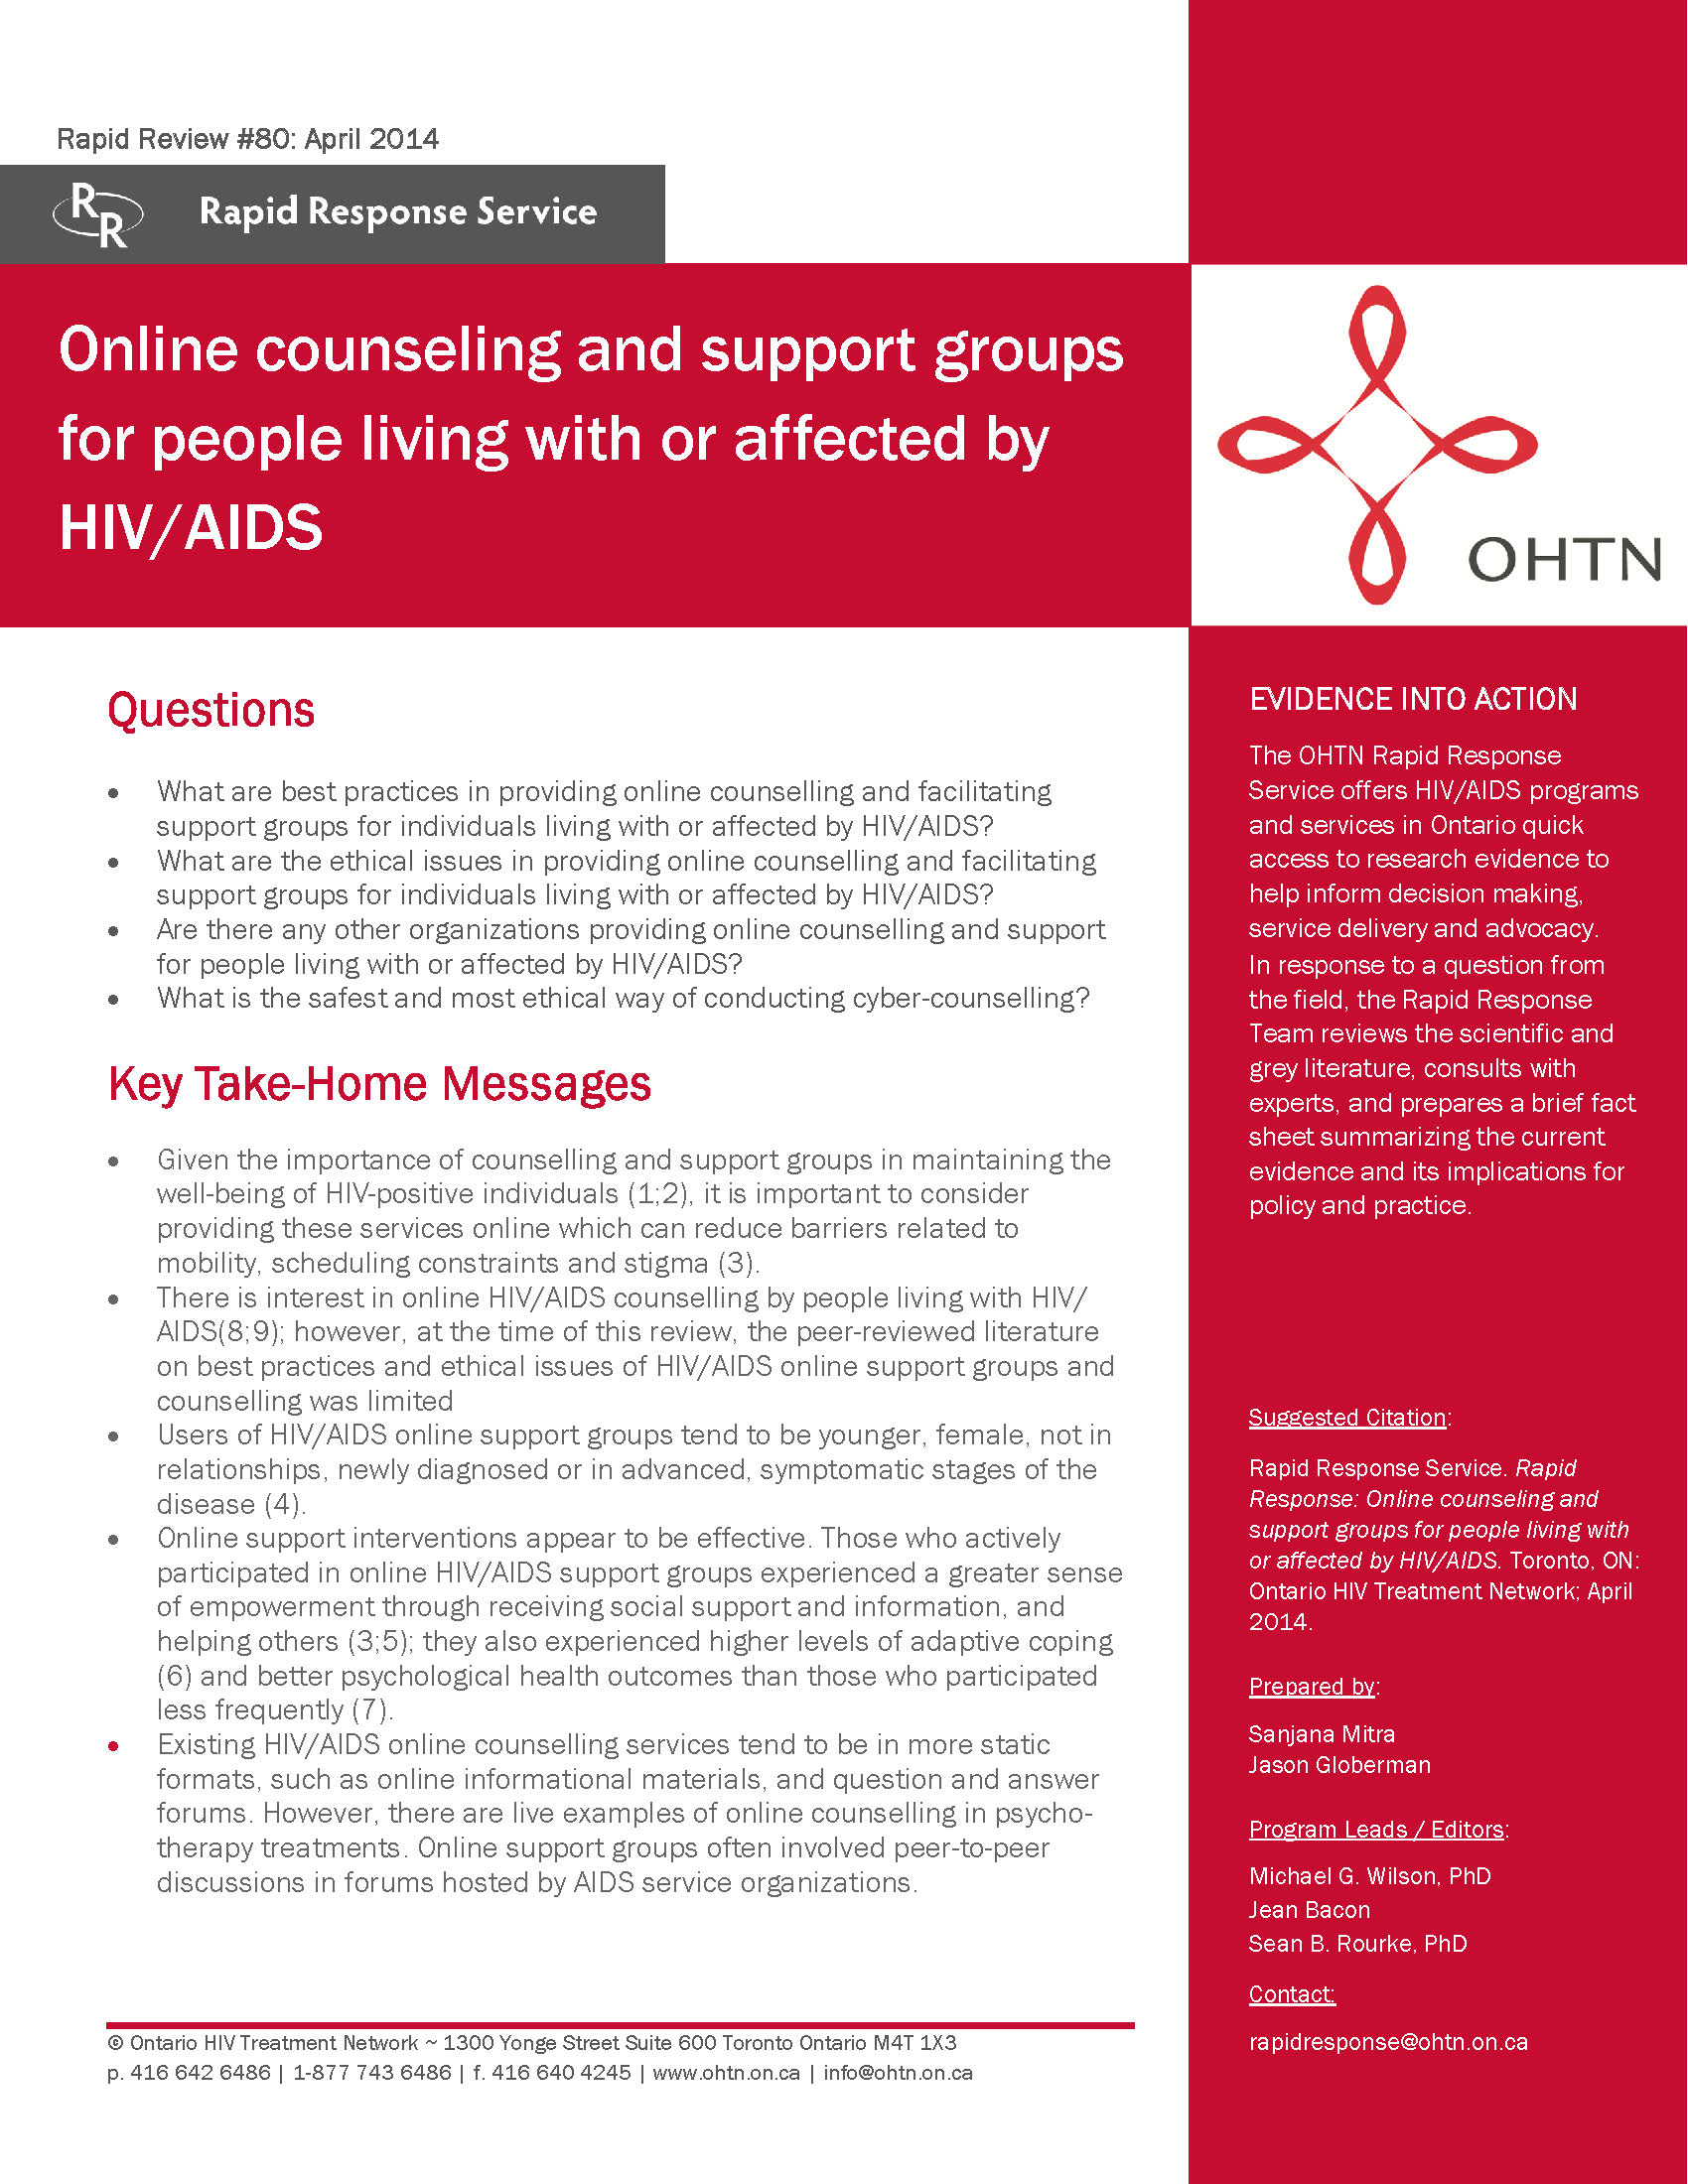 09-rr80-online-counselling